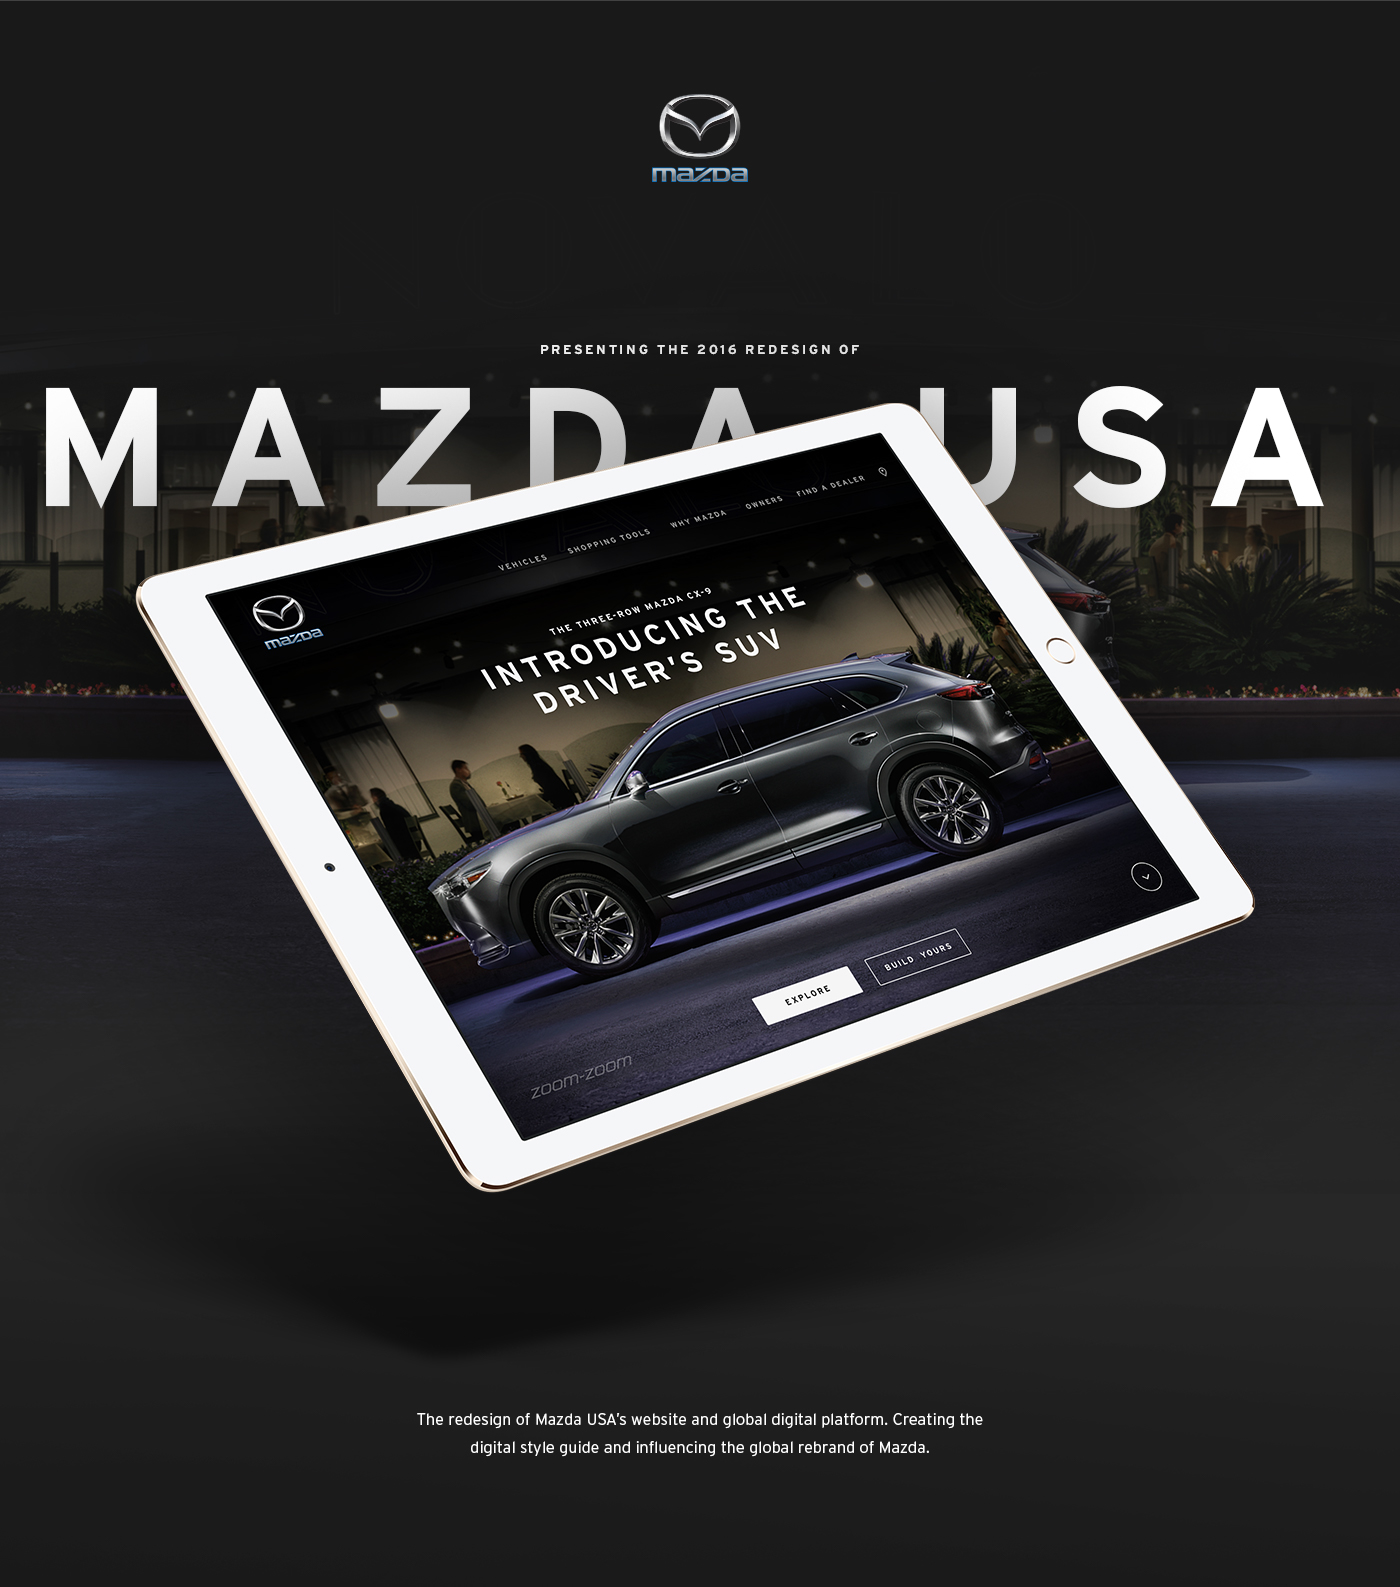 UI Design for the new Mazda website